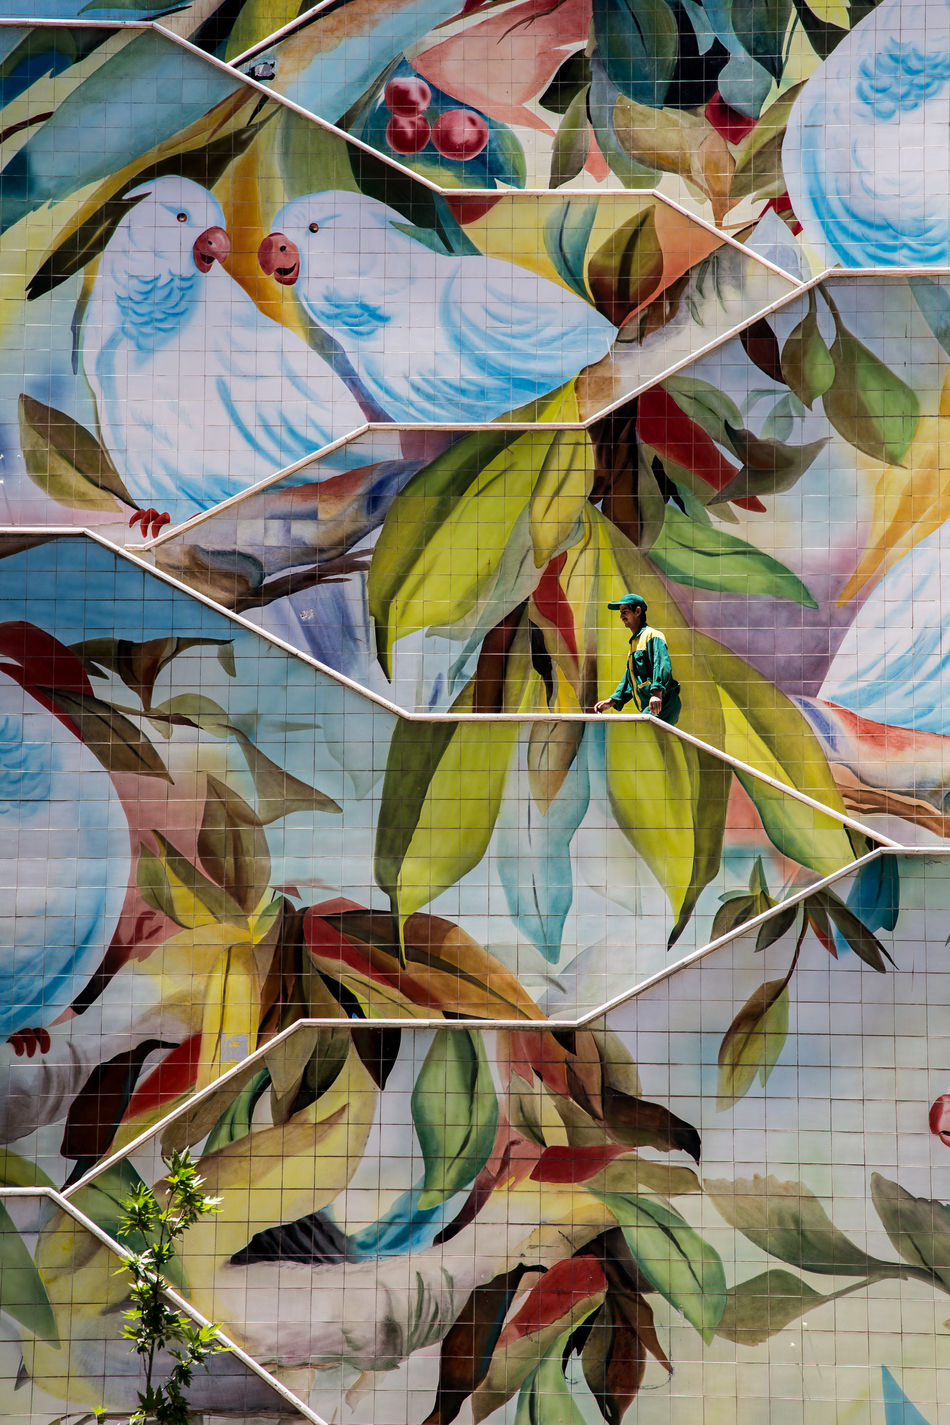 Birds Design Graffiti Iran Leaf Middle East Multi Colored Persia Stairs Street Photography Street Scene Tehran Travel